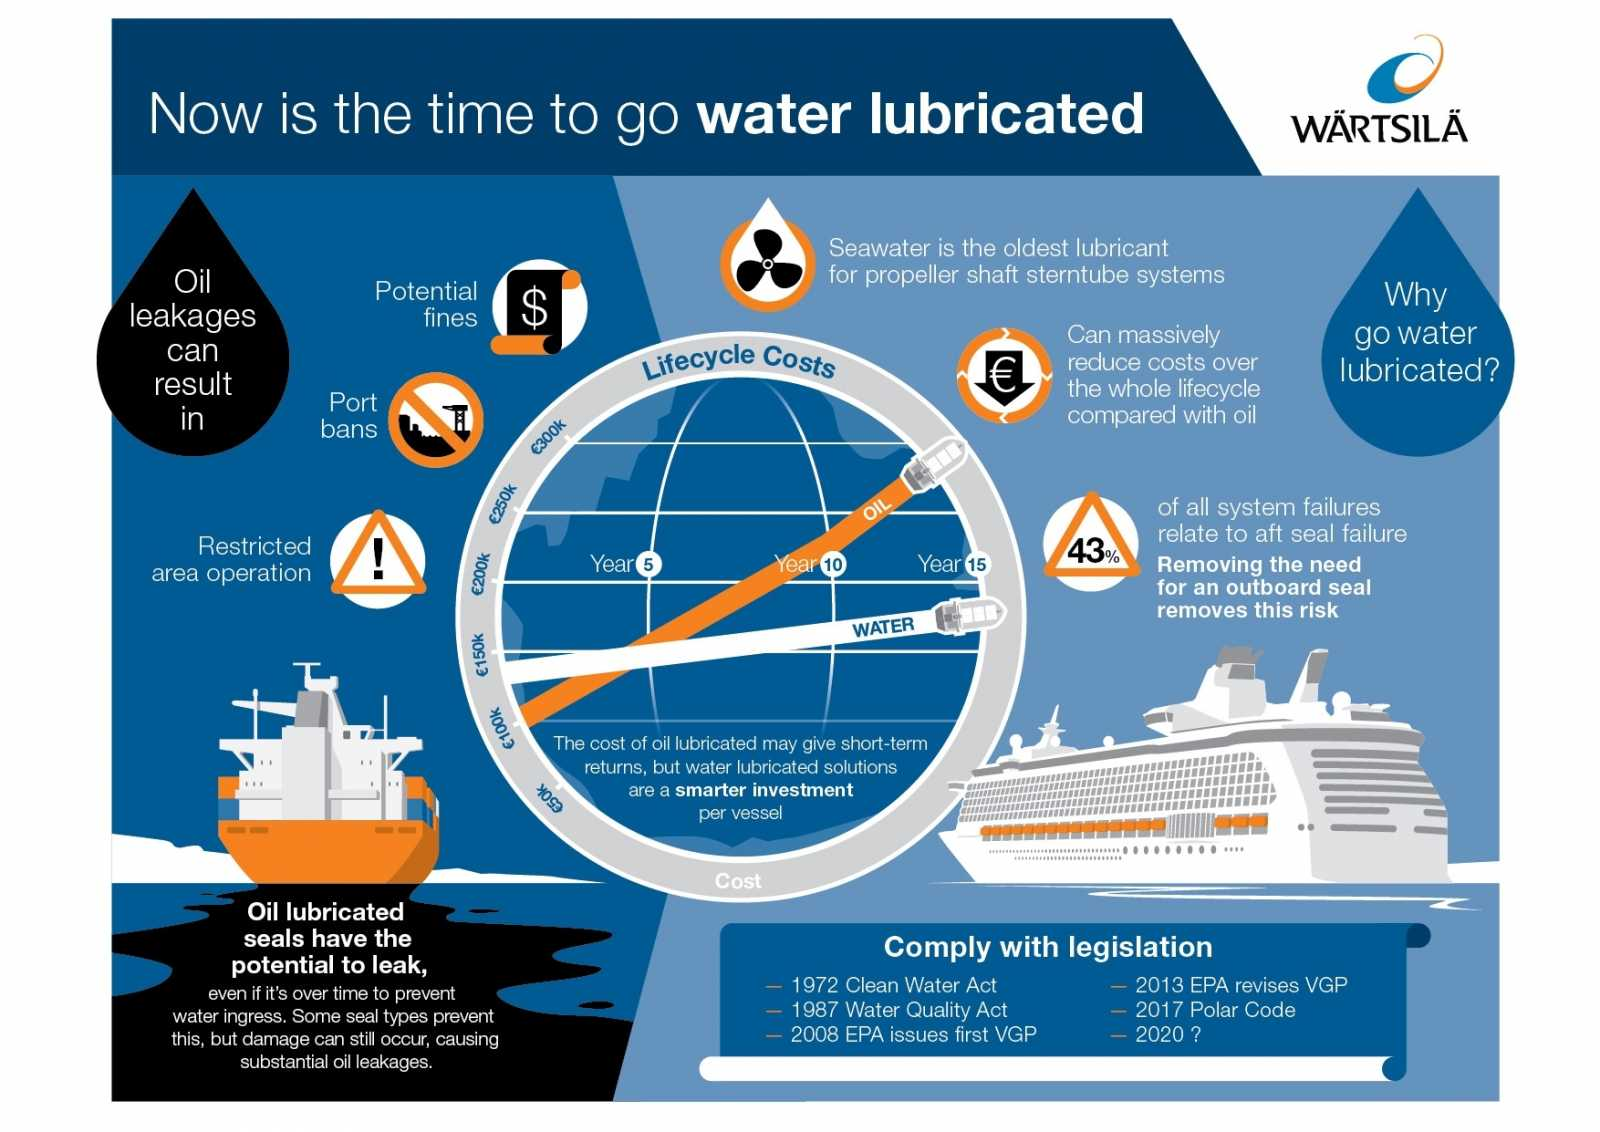 Water Lubricated Infographic